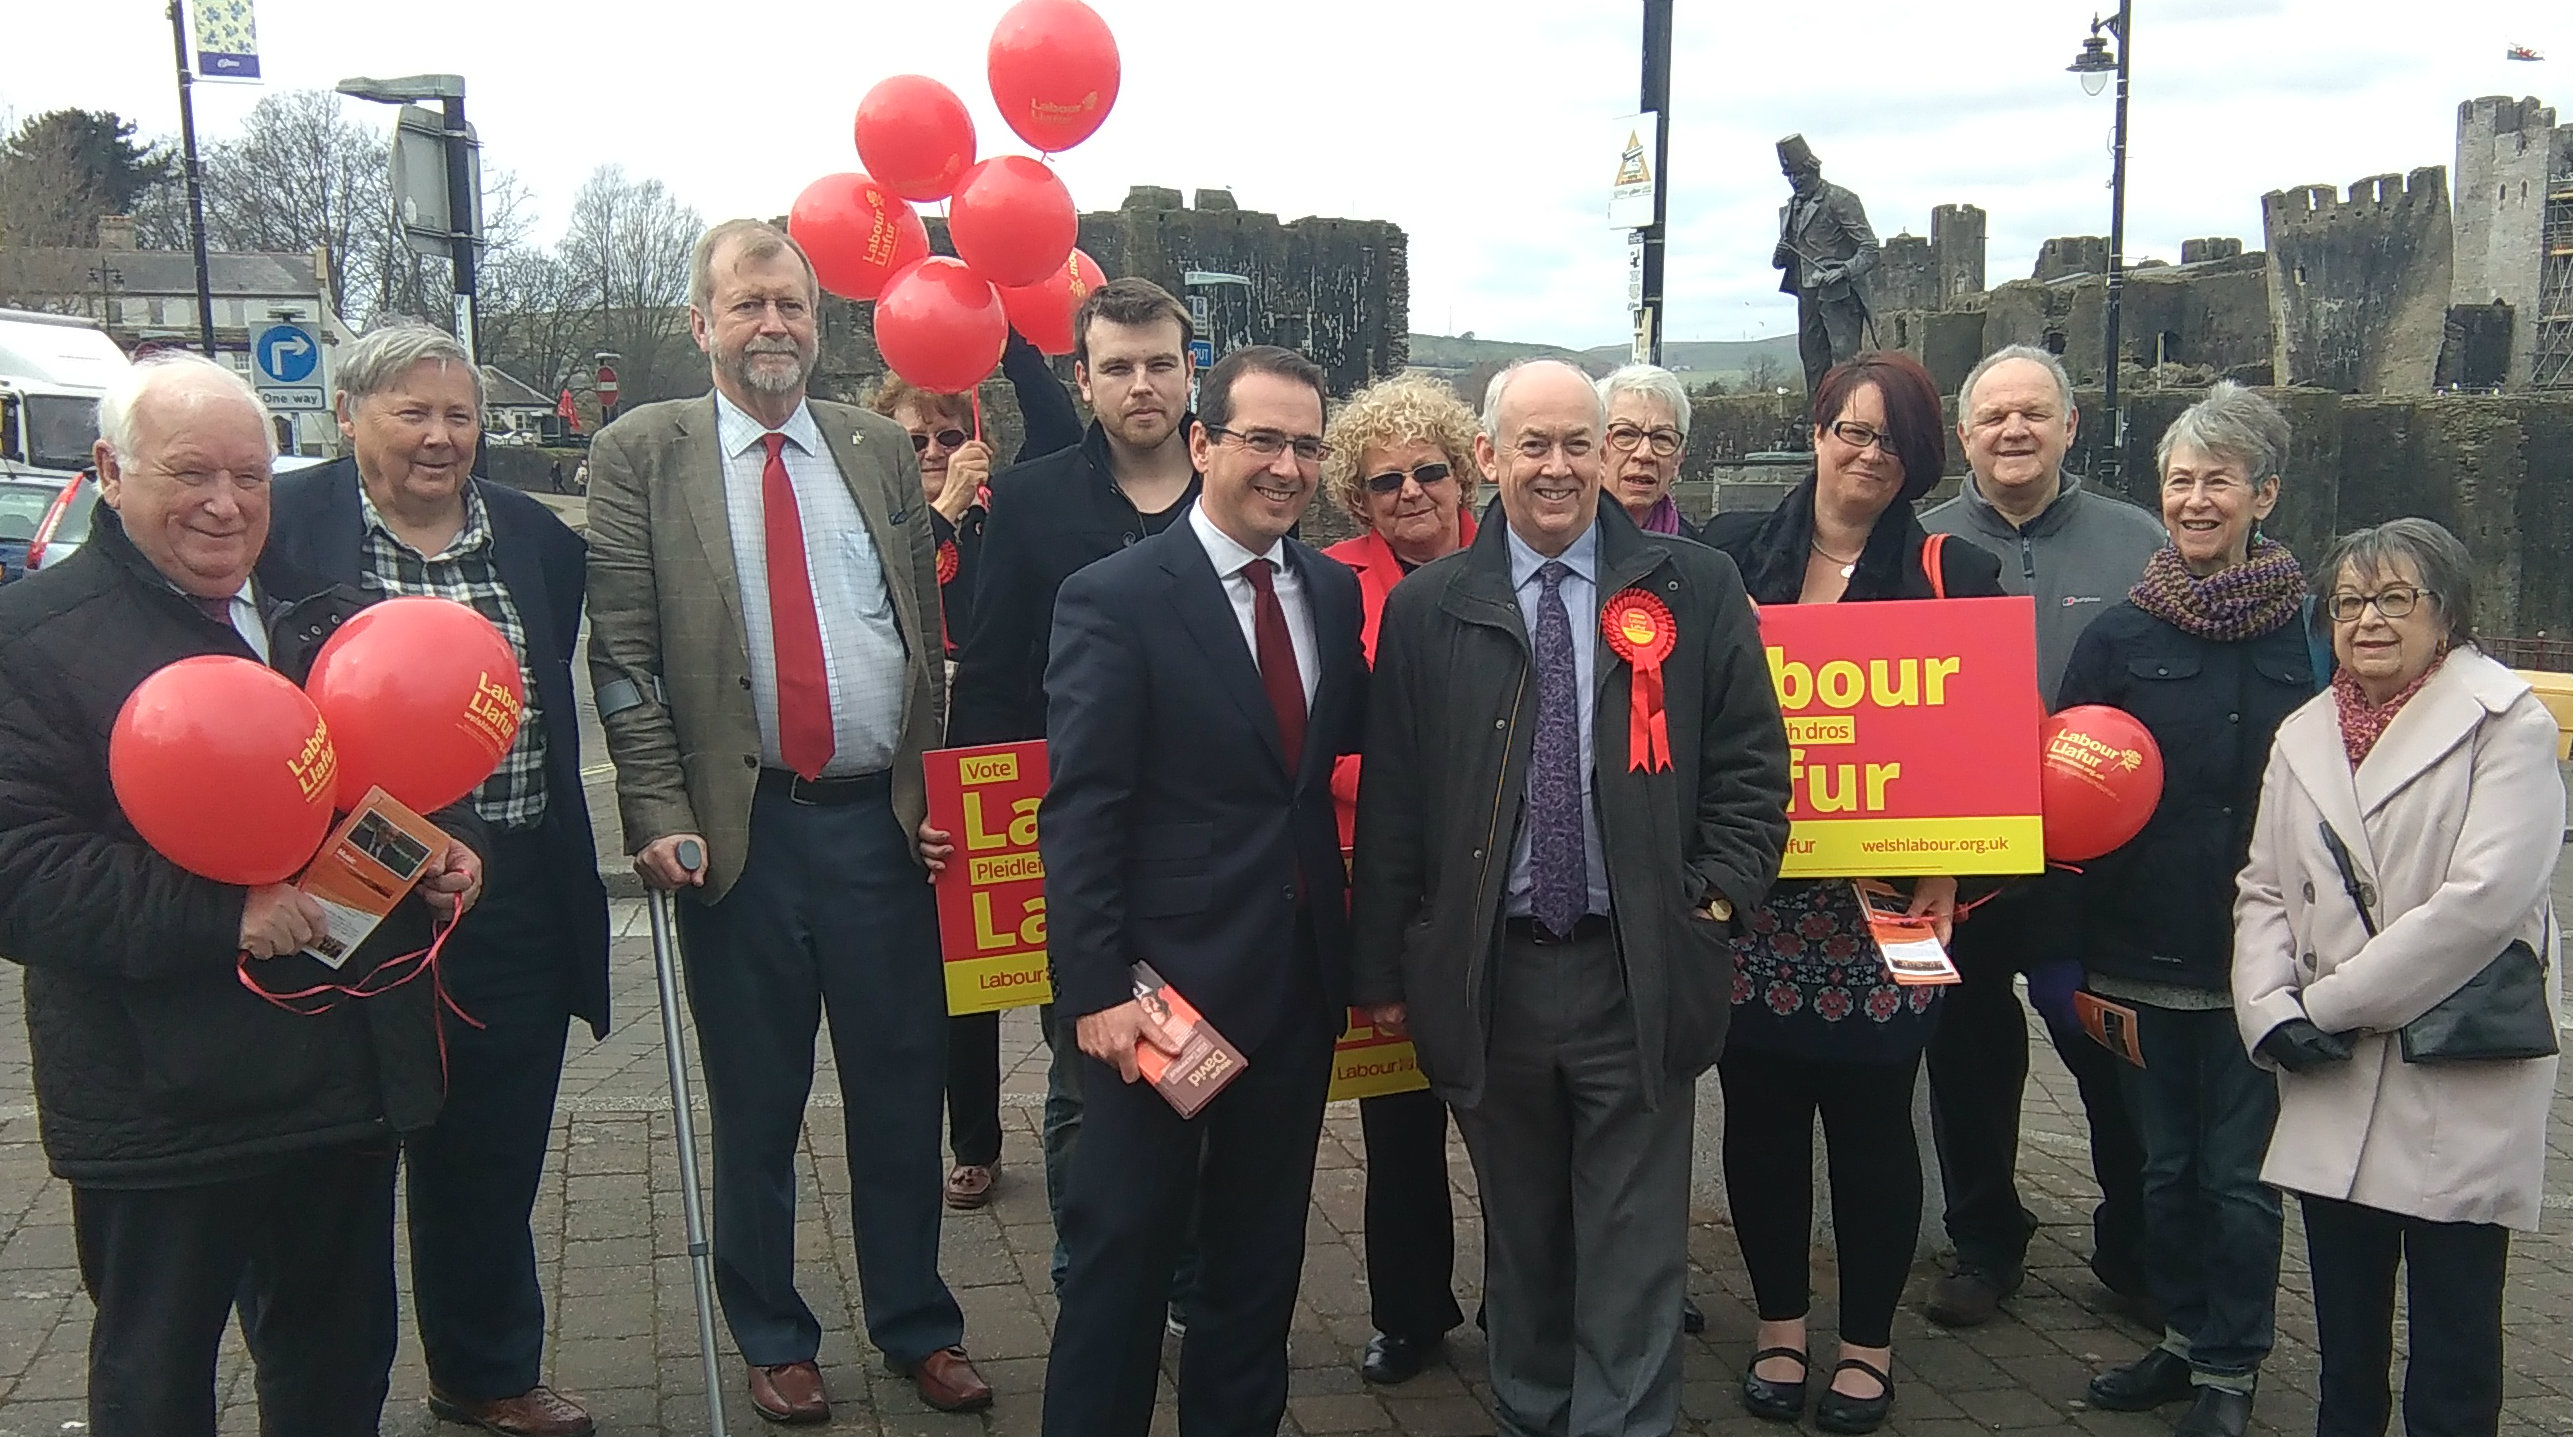 Caerphilly Labour Party election campaign launch